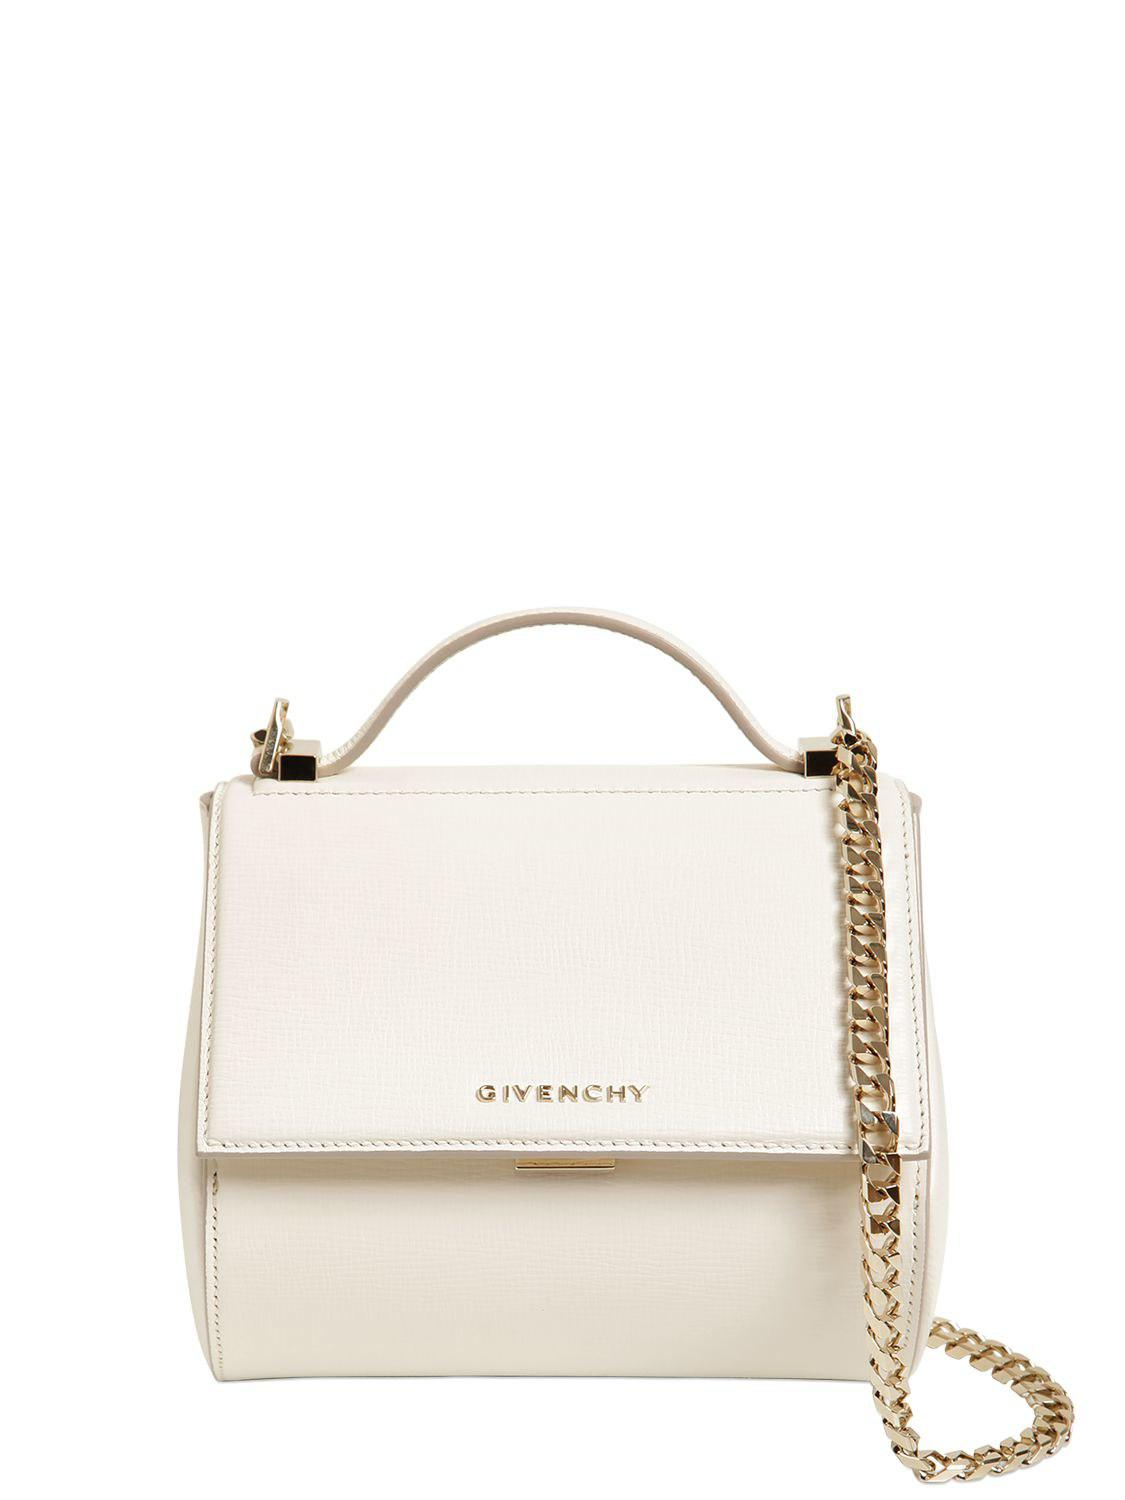 Lyst Givenchy Mini Pandora Box Bag W Chain Strap In White